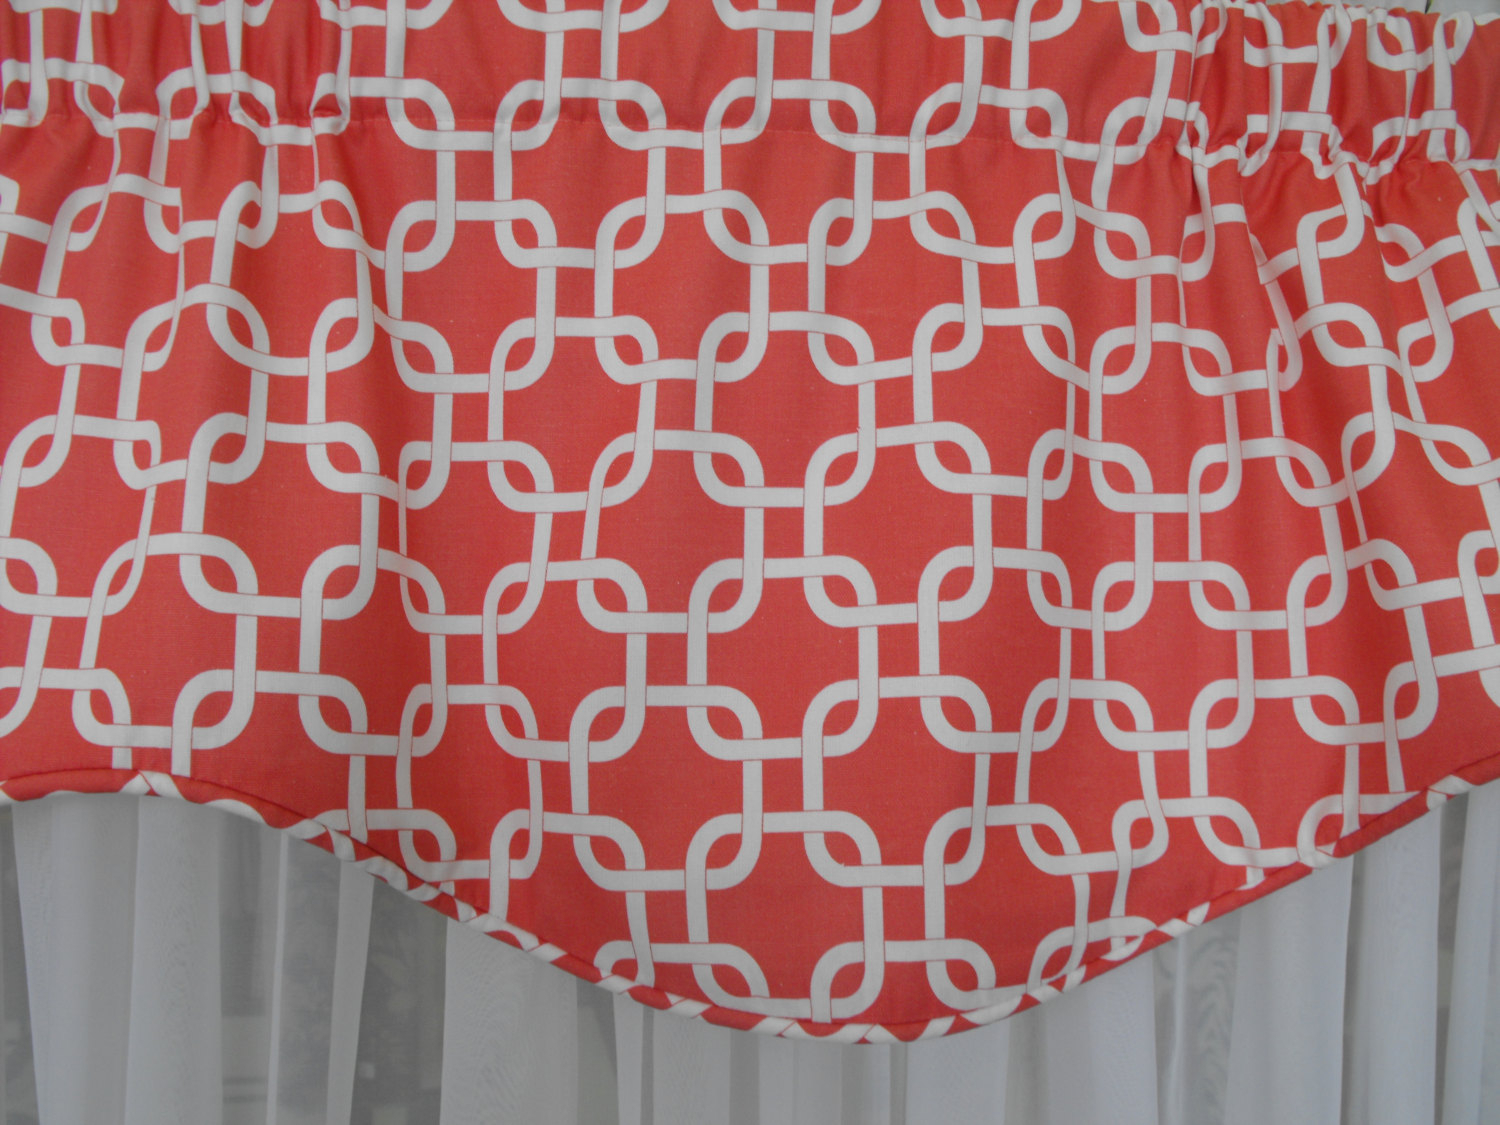 Window Treatment Valance – Window Curtain – Valance – Window Valances – Coral Valance – Shaped Valance – Scalloped Valance – Custom Made Regarding Circle Curtain Valances (View 19 of 20)